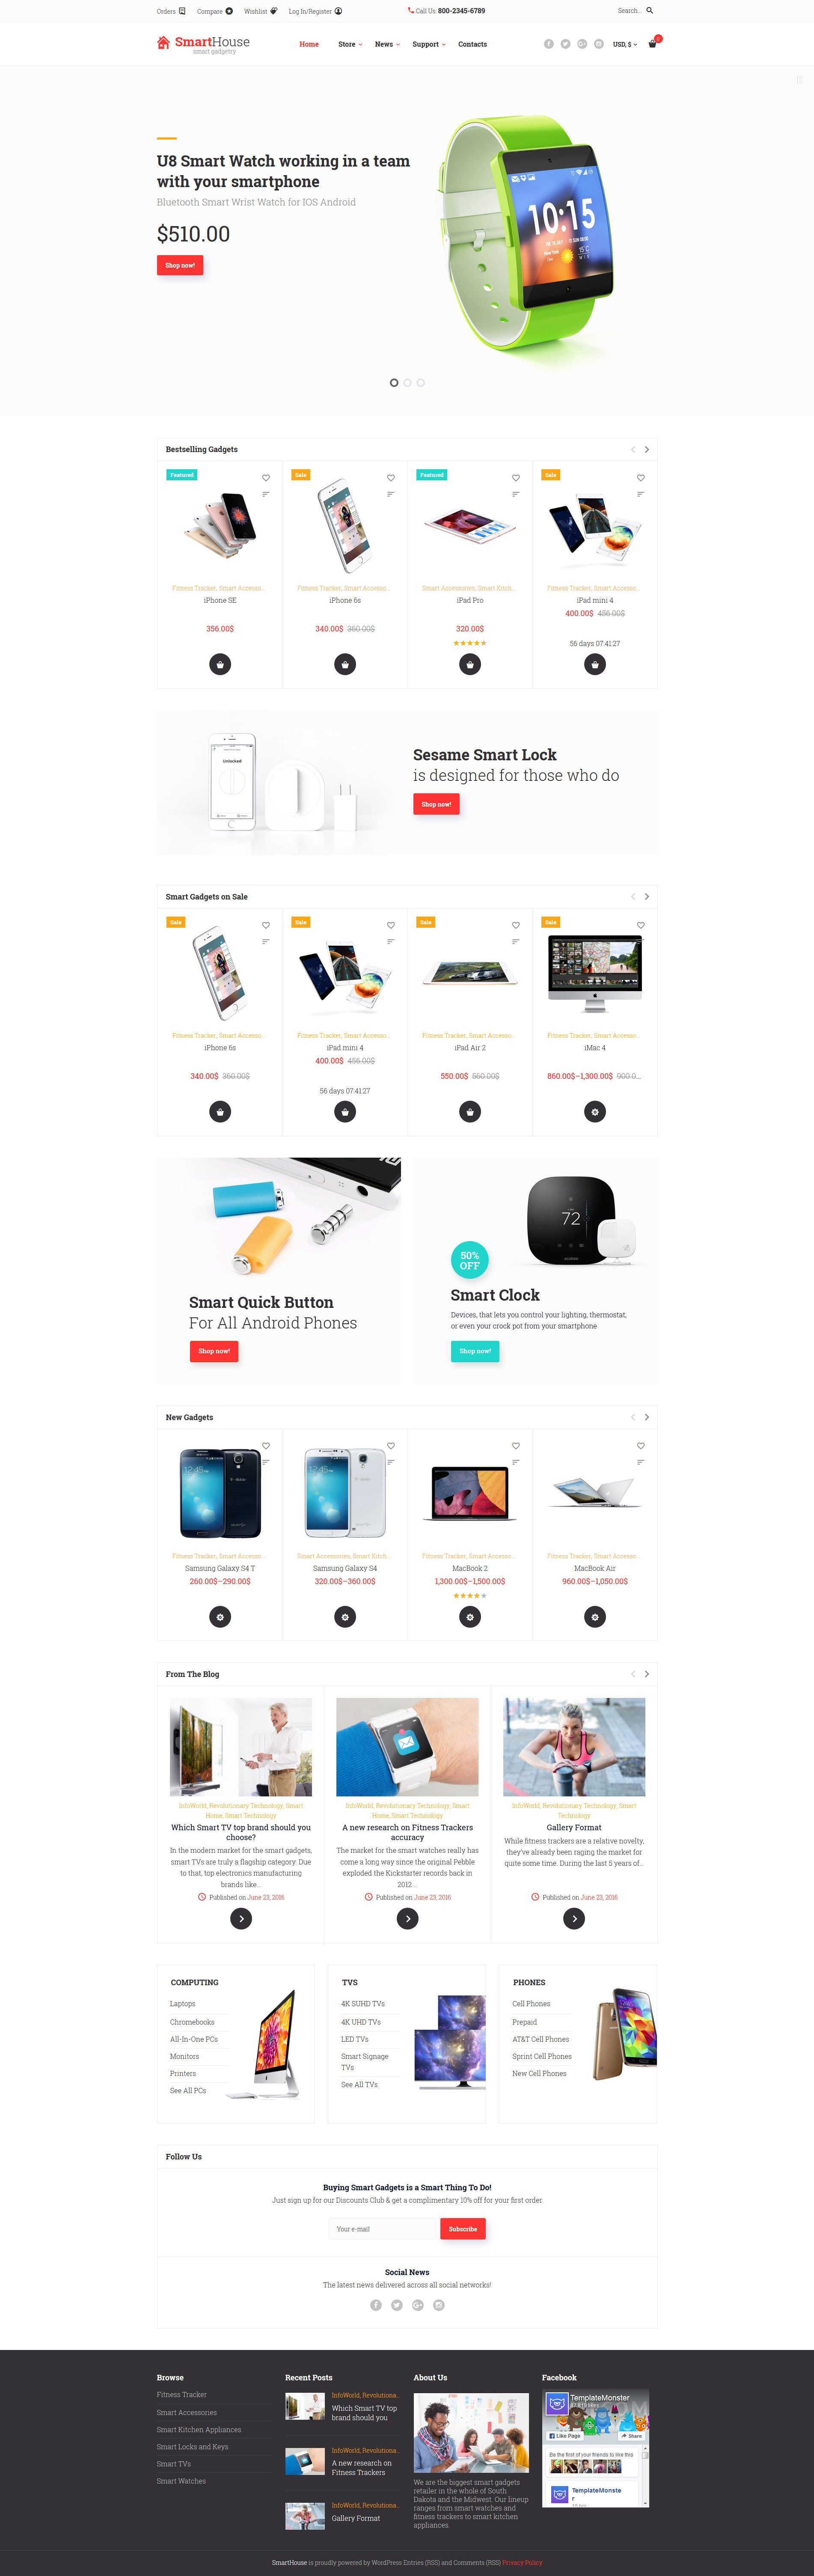 SmartHouse - Accessories & Gadgets WooCommerce Theme